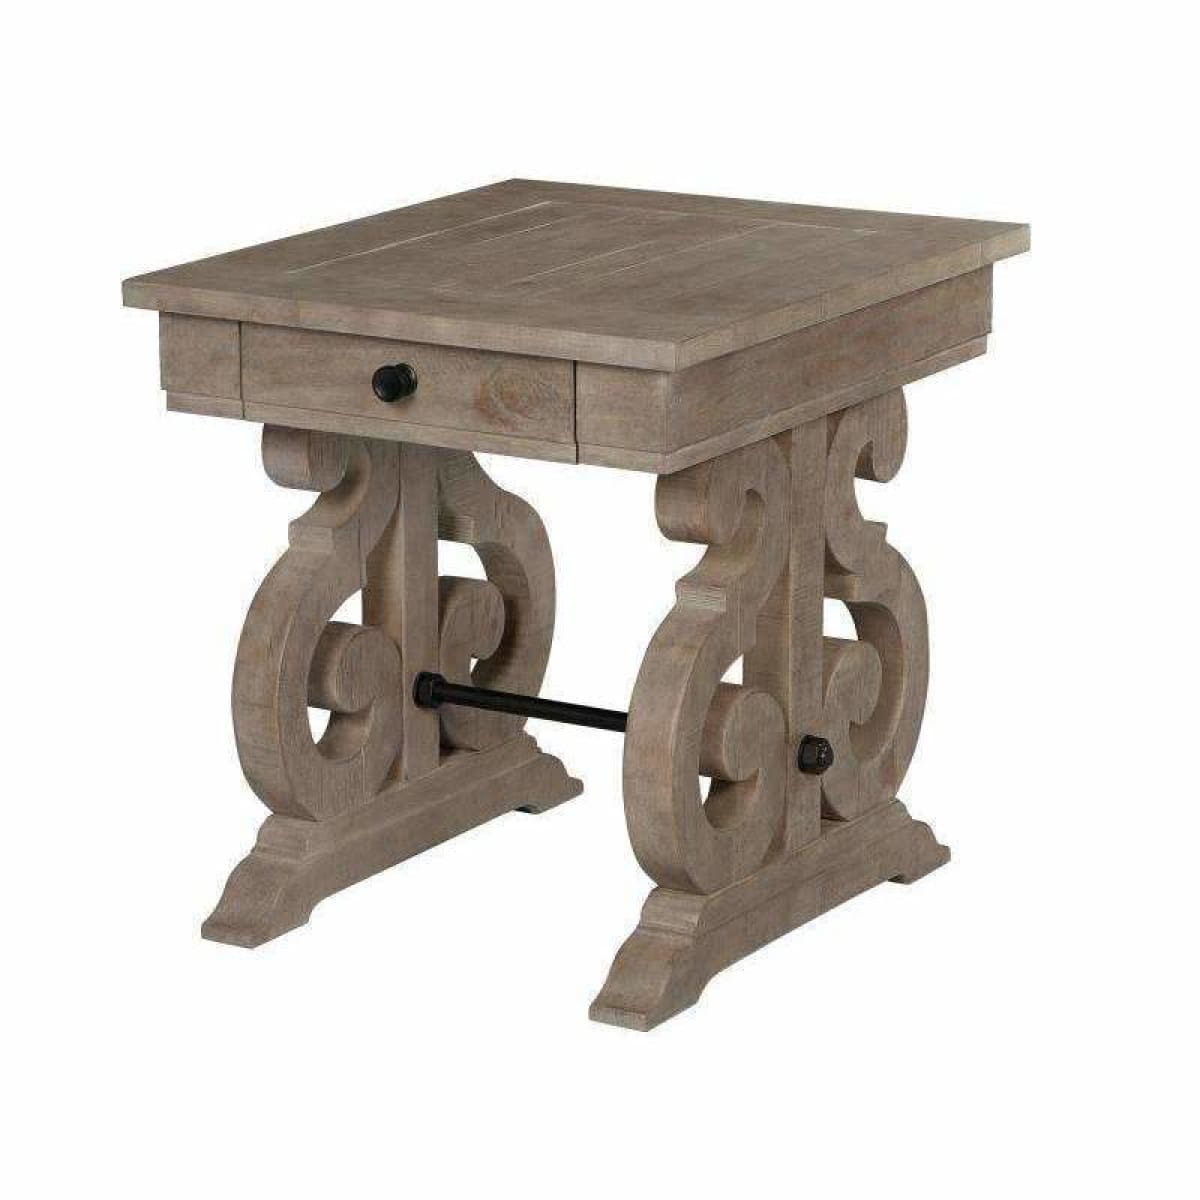 Tinley Park Rectangular End Table - END TABLE/SIDE TABLE